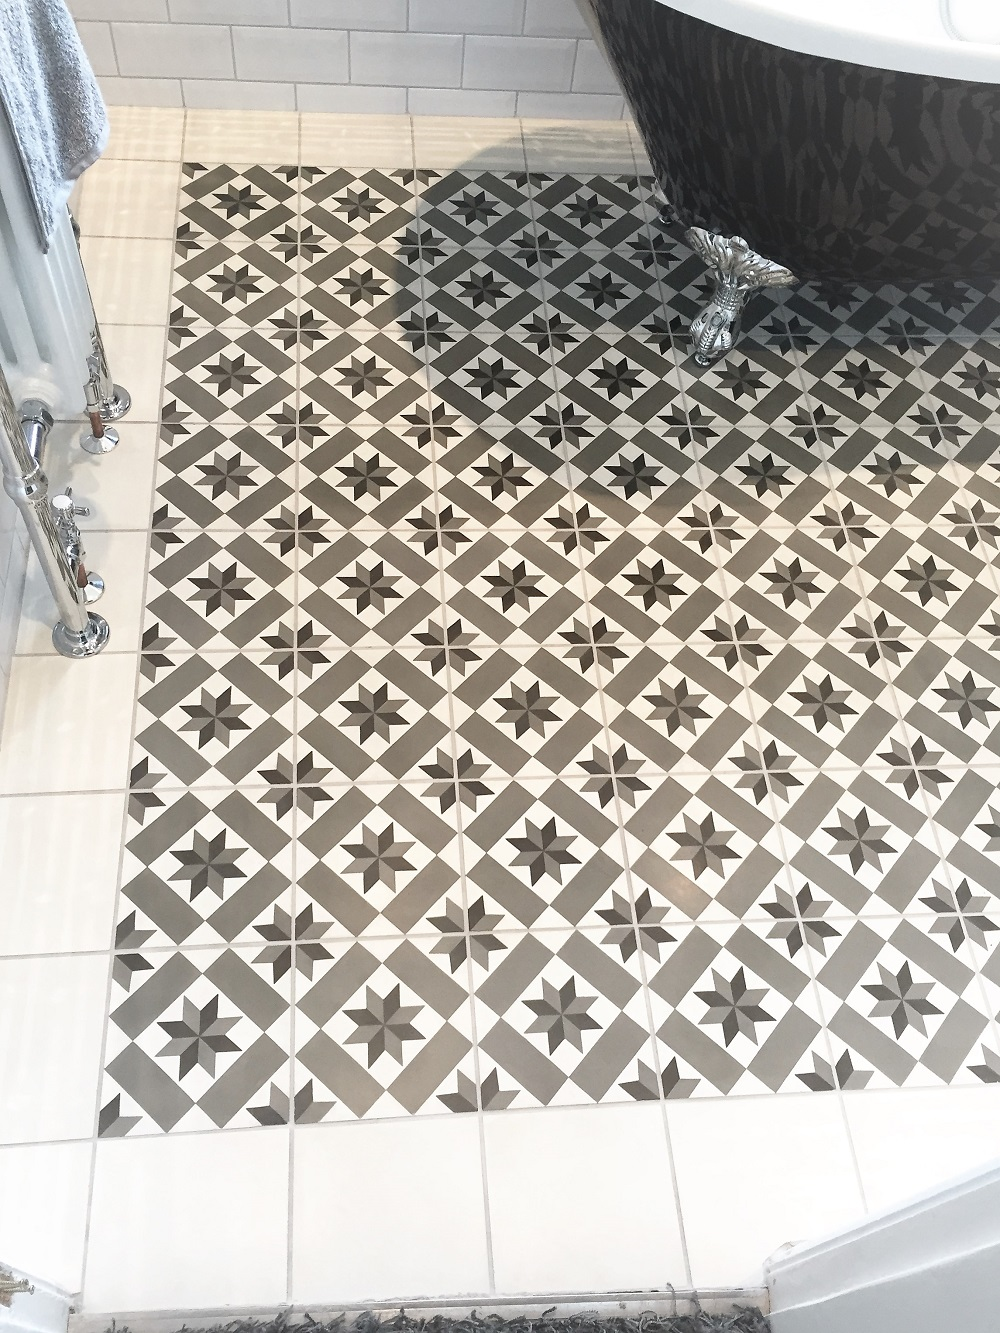 Encaustic Cement Floor Tiles After Cleaning Stockport